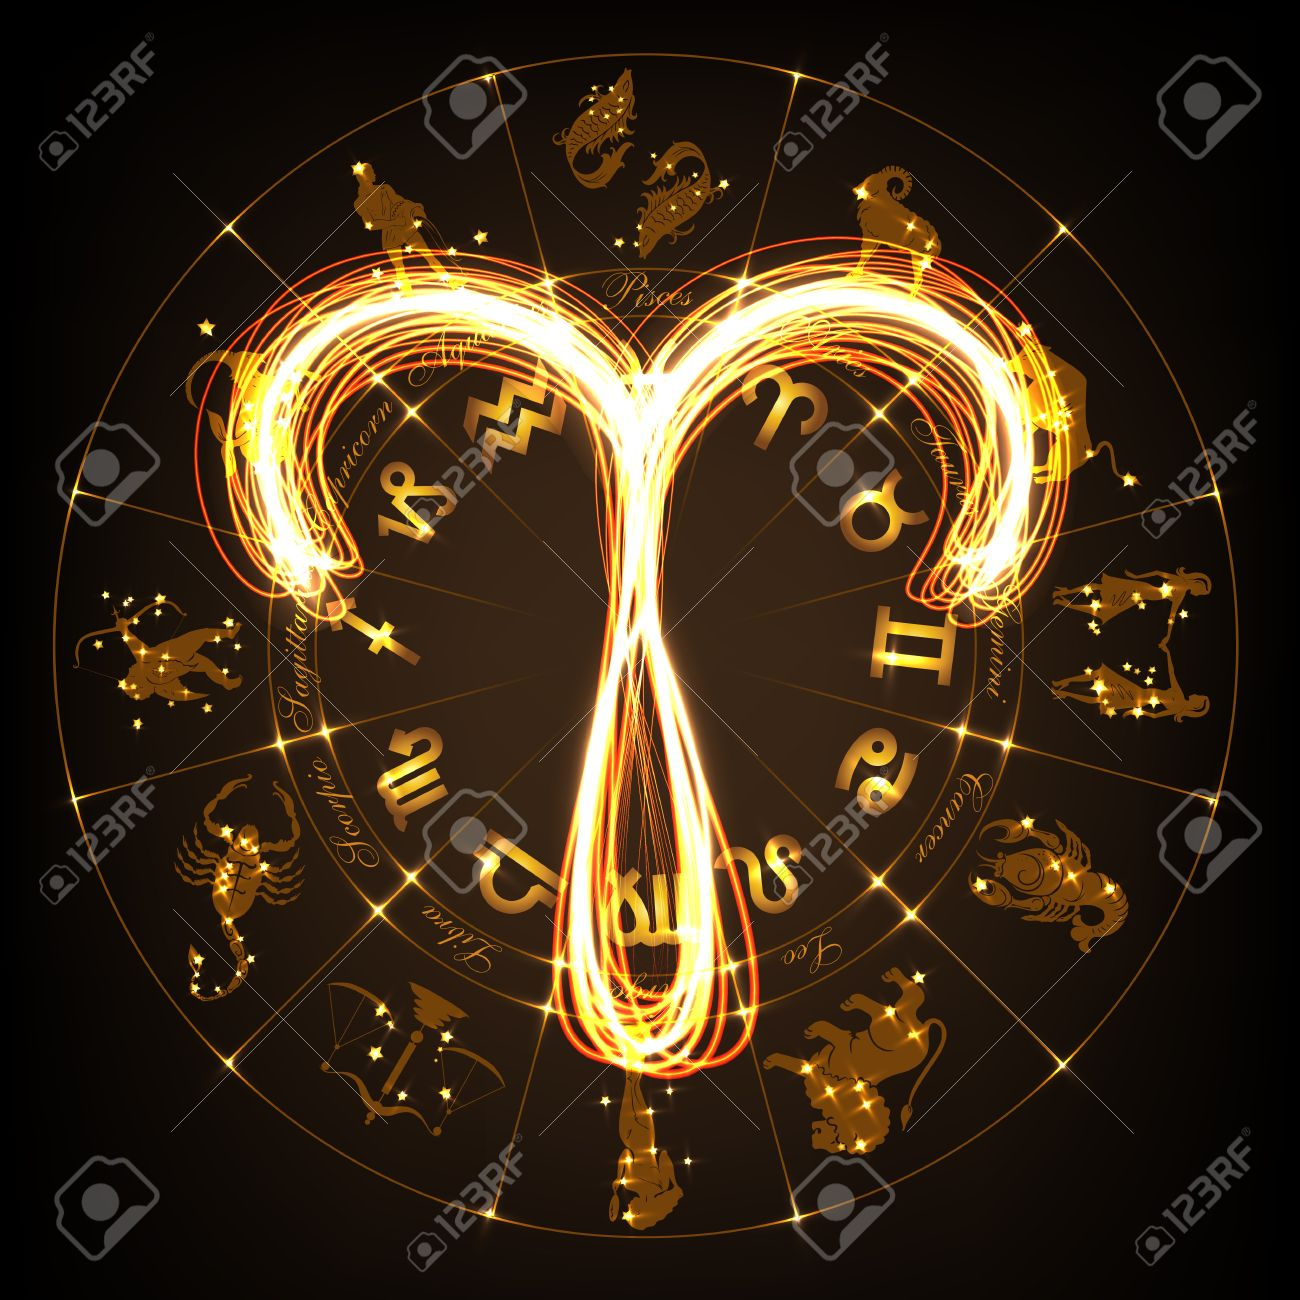 Zodiac sign aries in fire show style on horoscope circle zodiac sign aries in fire show style on horoscope circle background circle with signs biocorpaavc Gallery